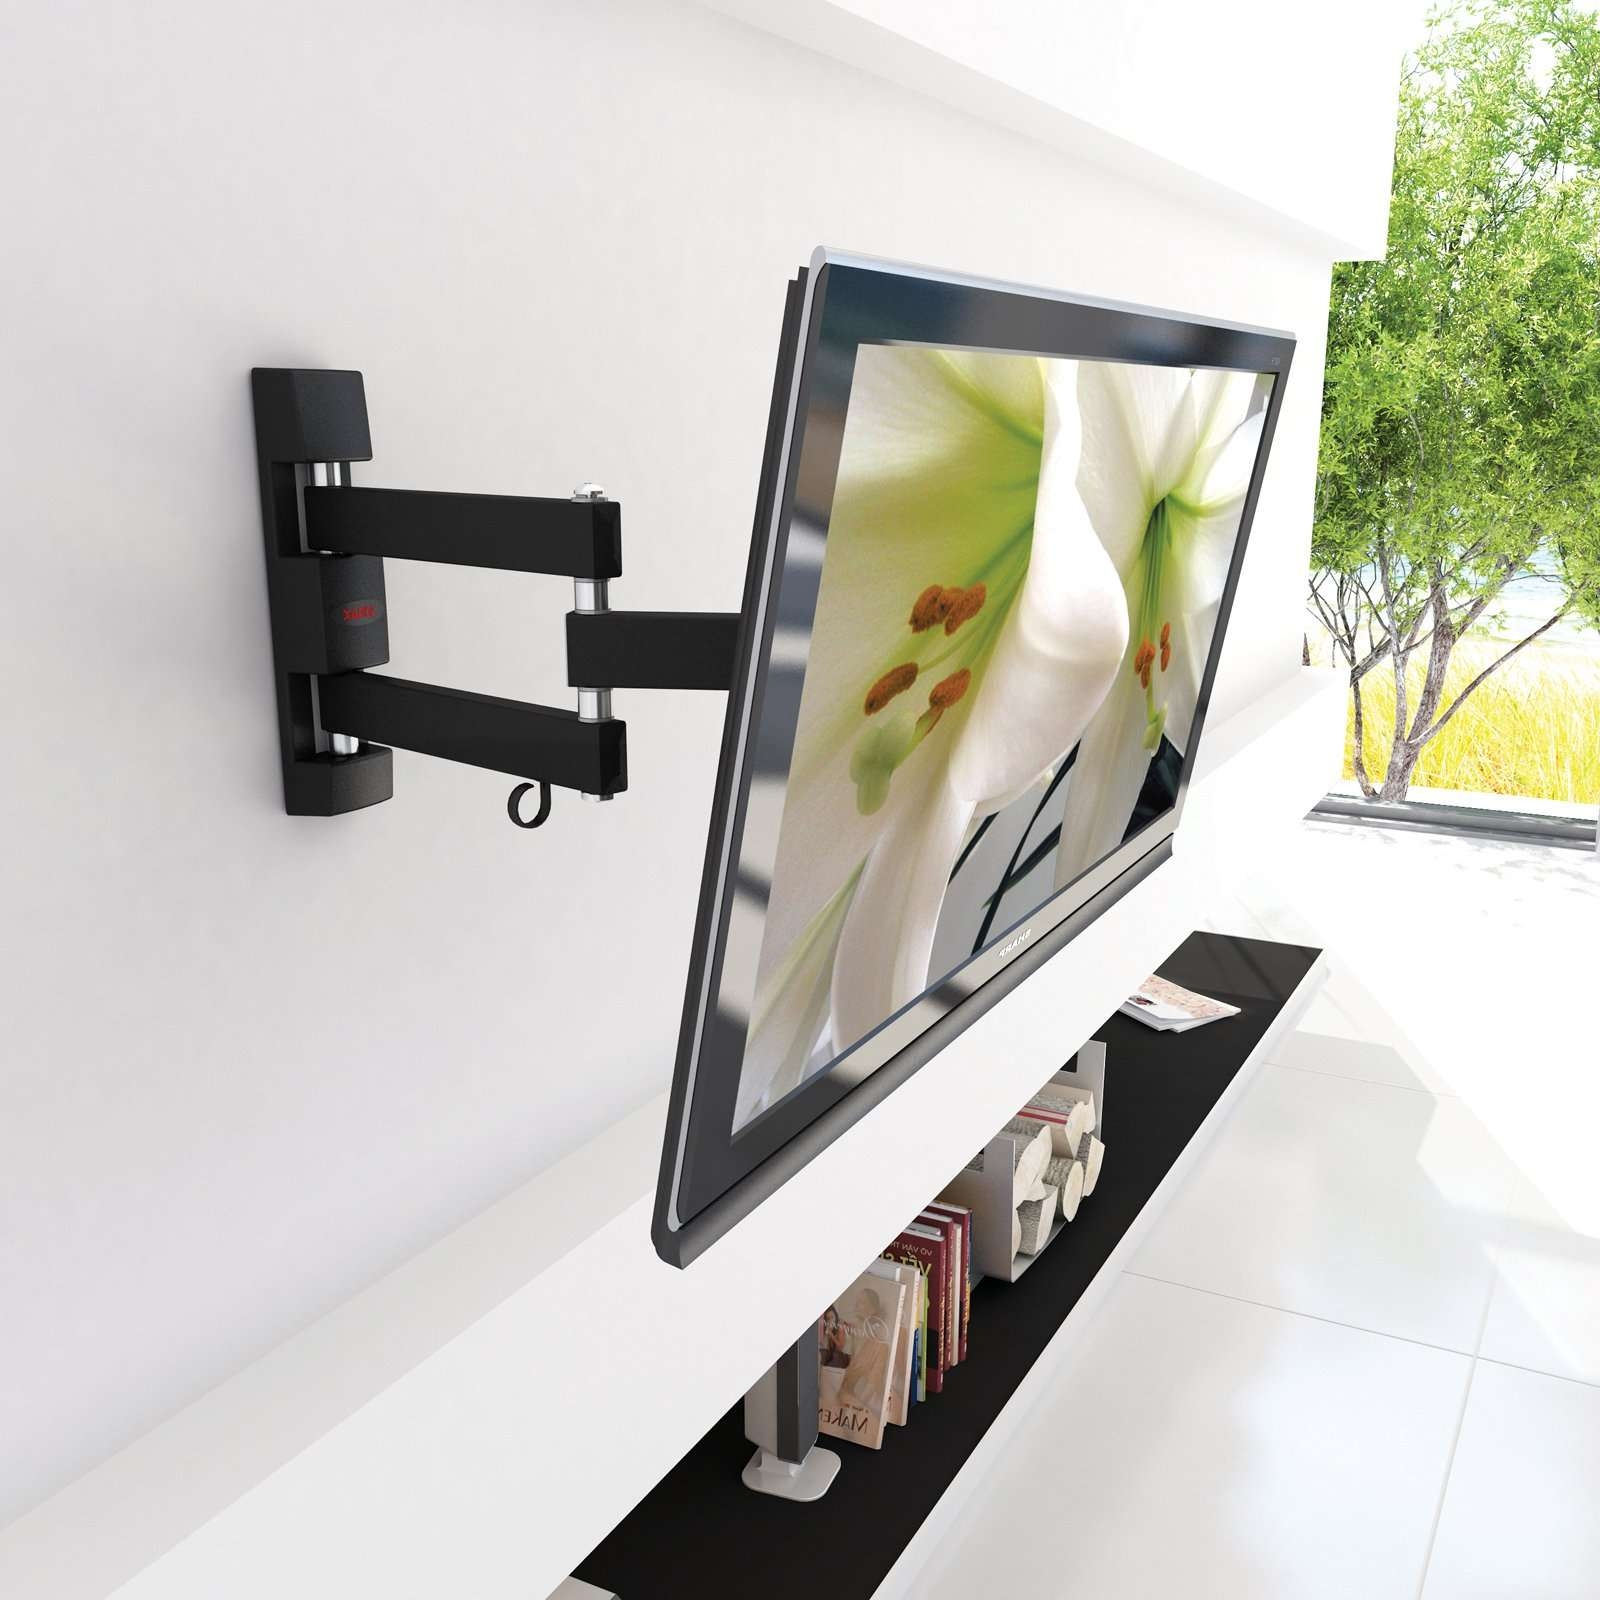 Furinno Modern Tv Stand With Wall Mount Bracket | Hayneedle With Regard To Wall Mount Adjustable Tv Stands (View 8 of 20)